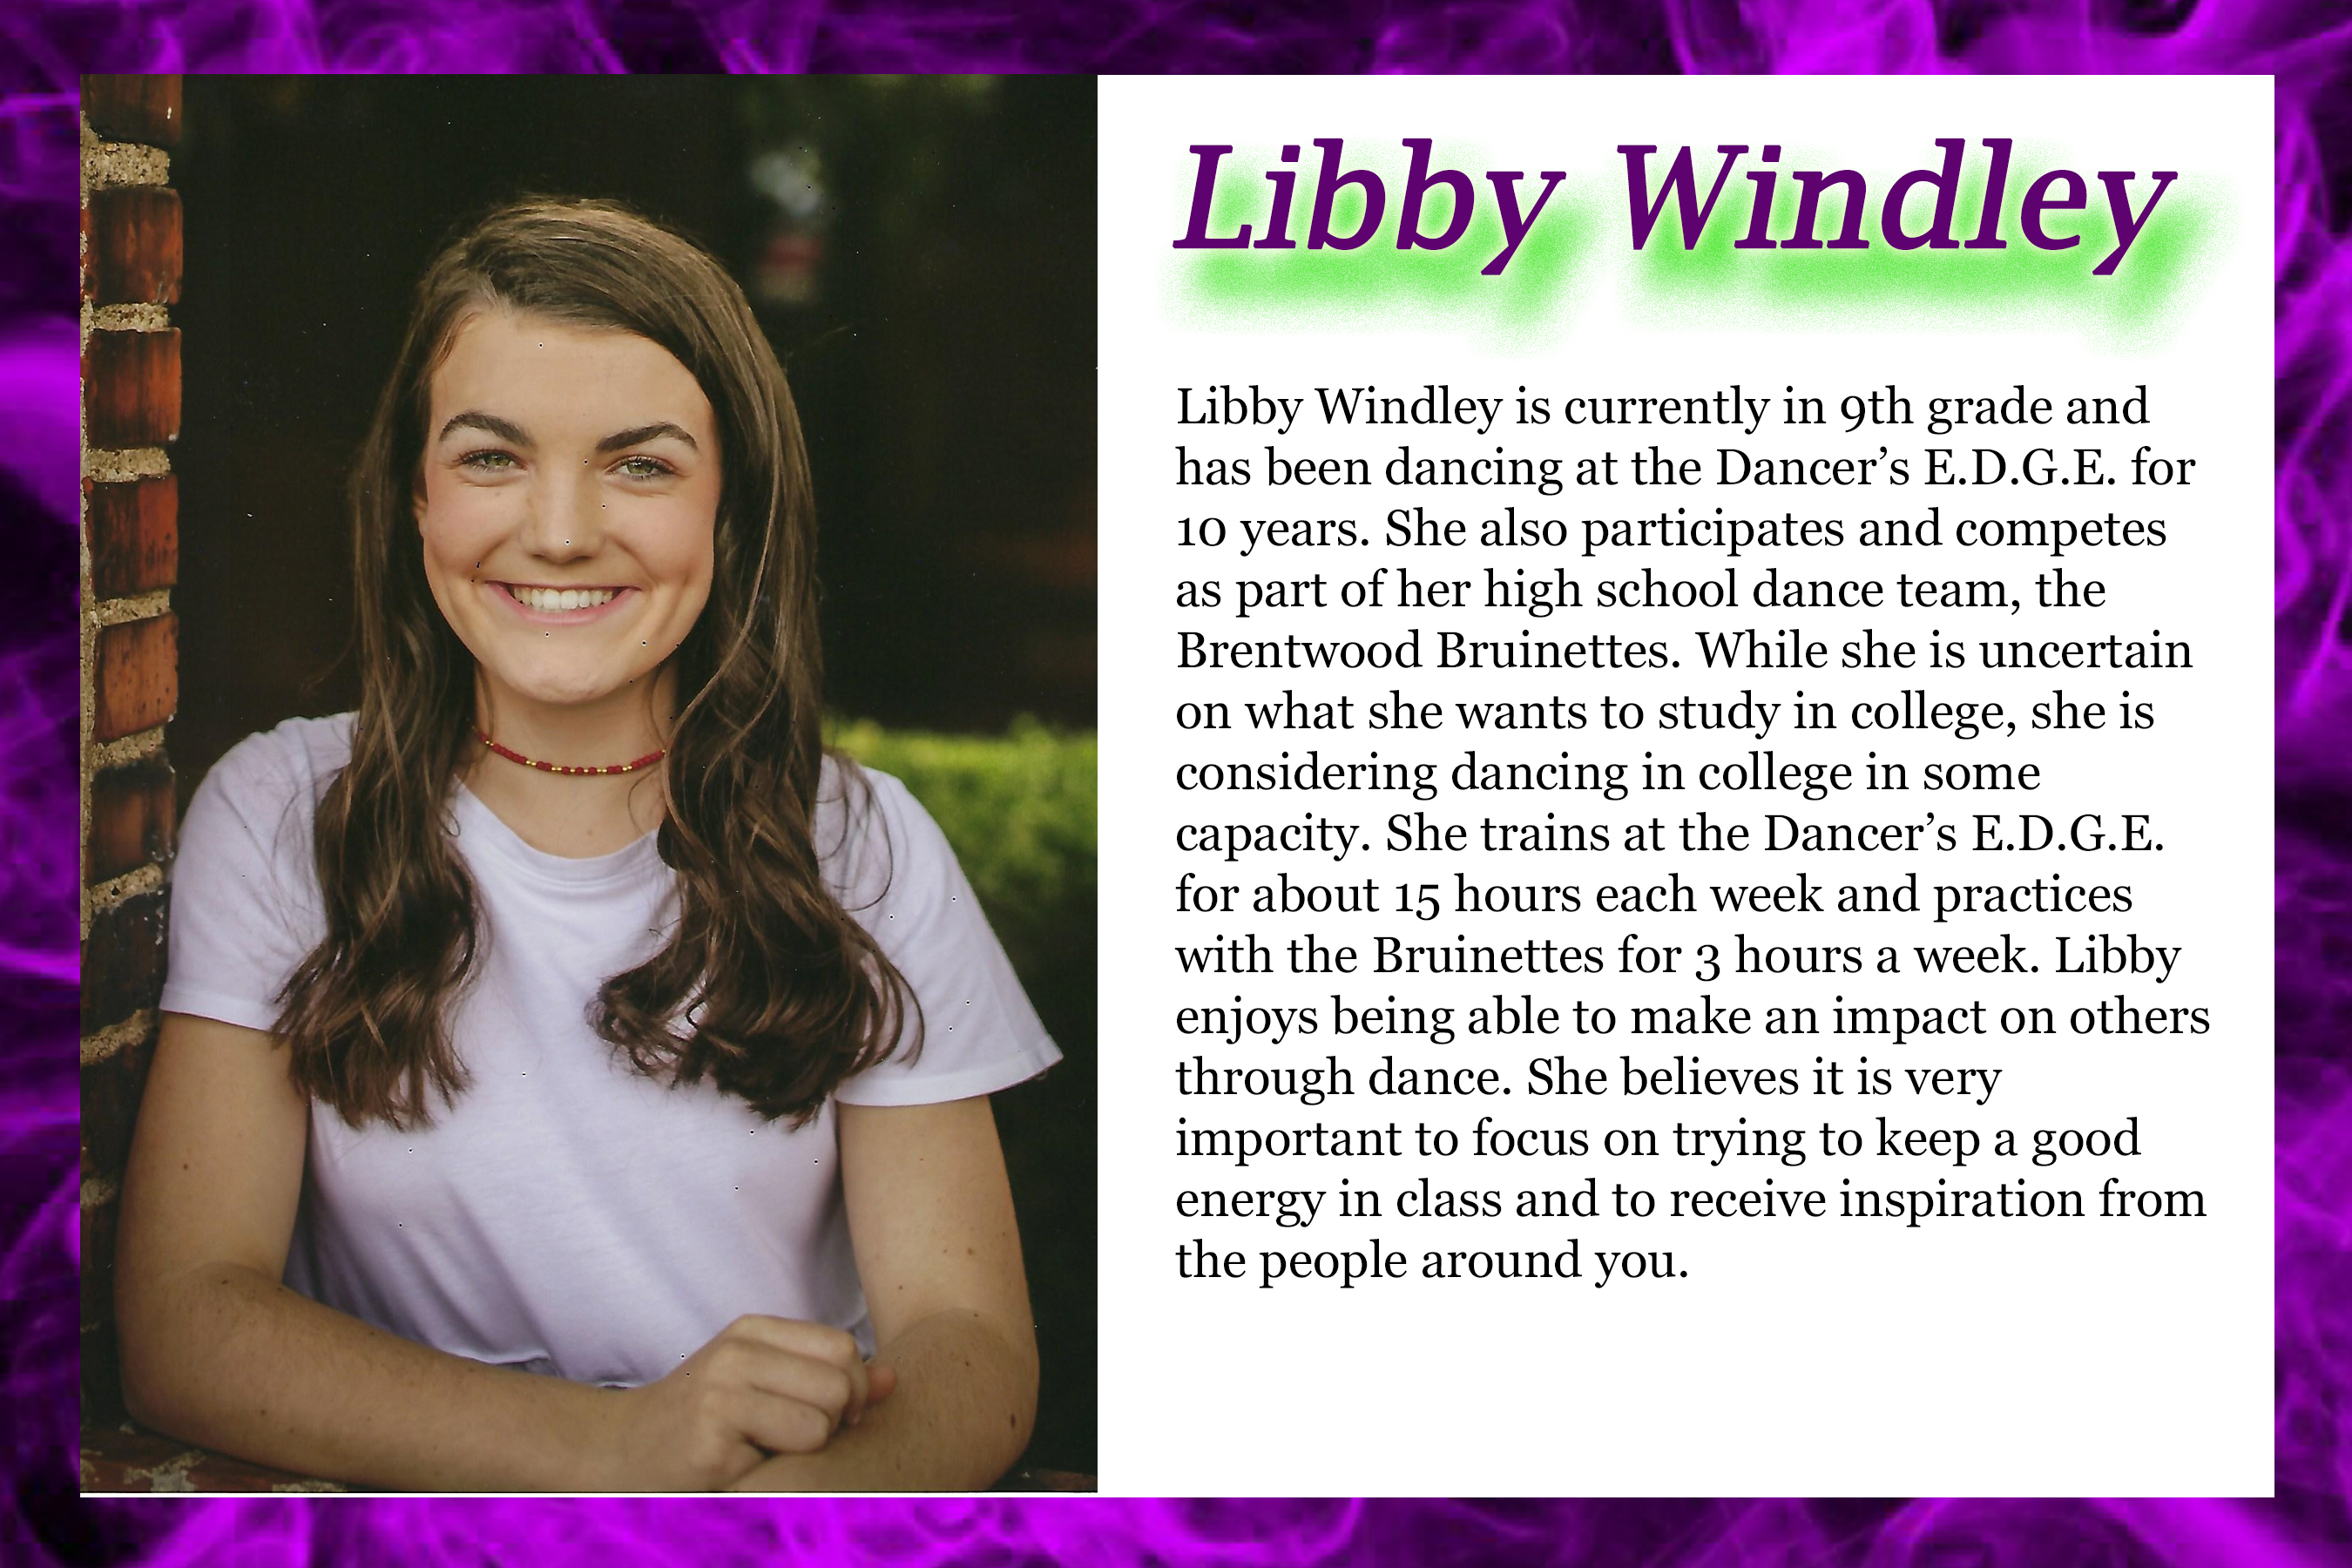 Libby Windley